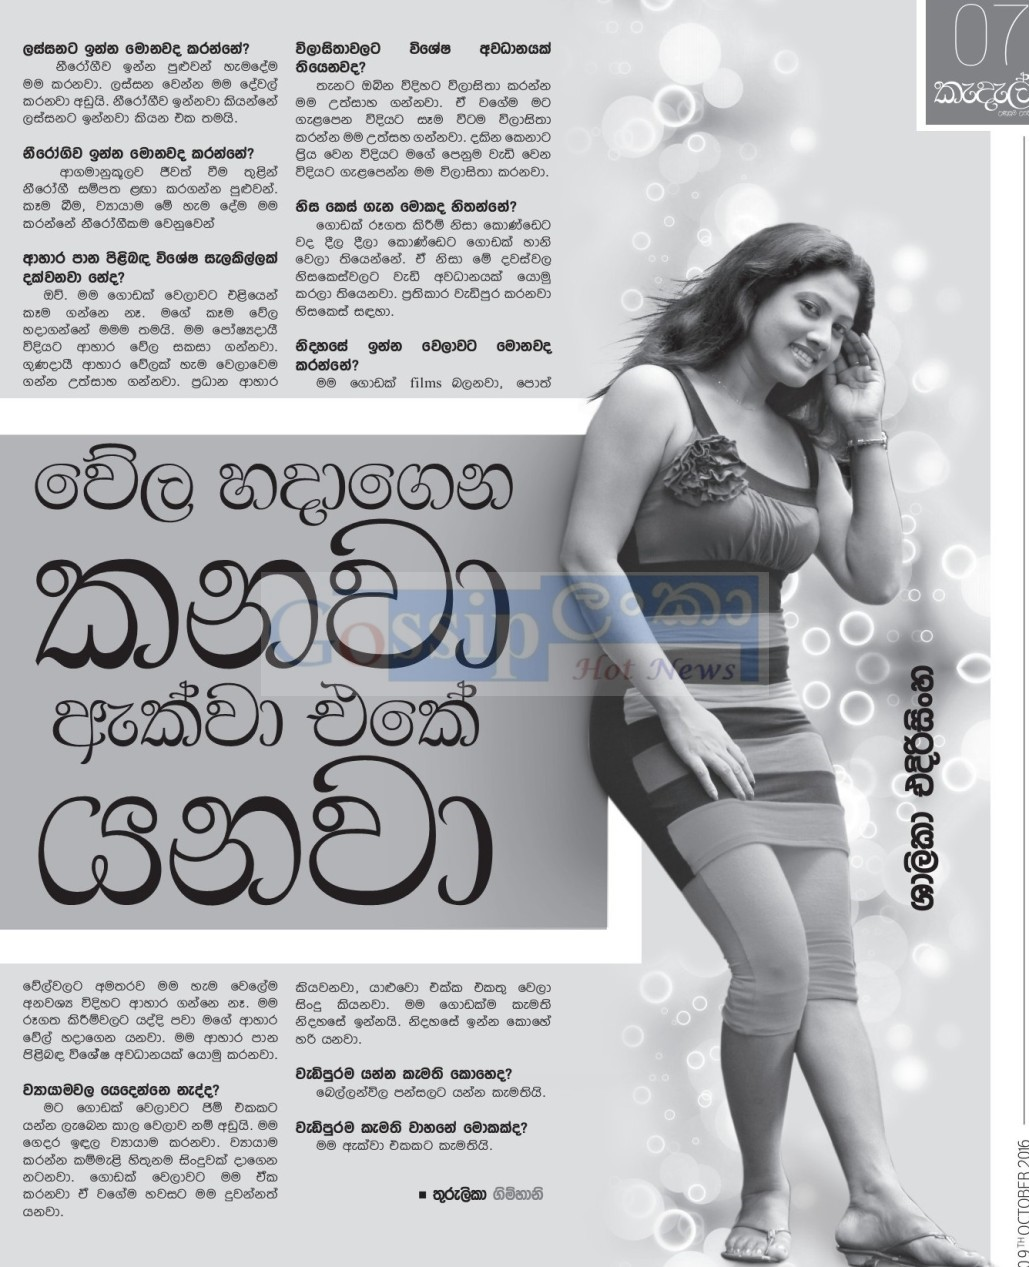 Gossip chat with Shalika Edirisinghe